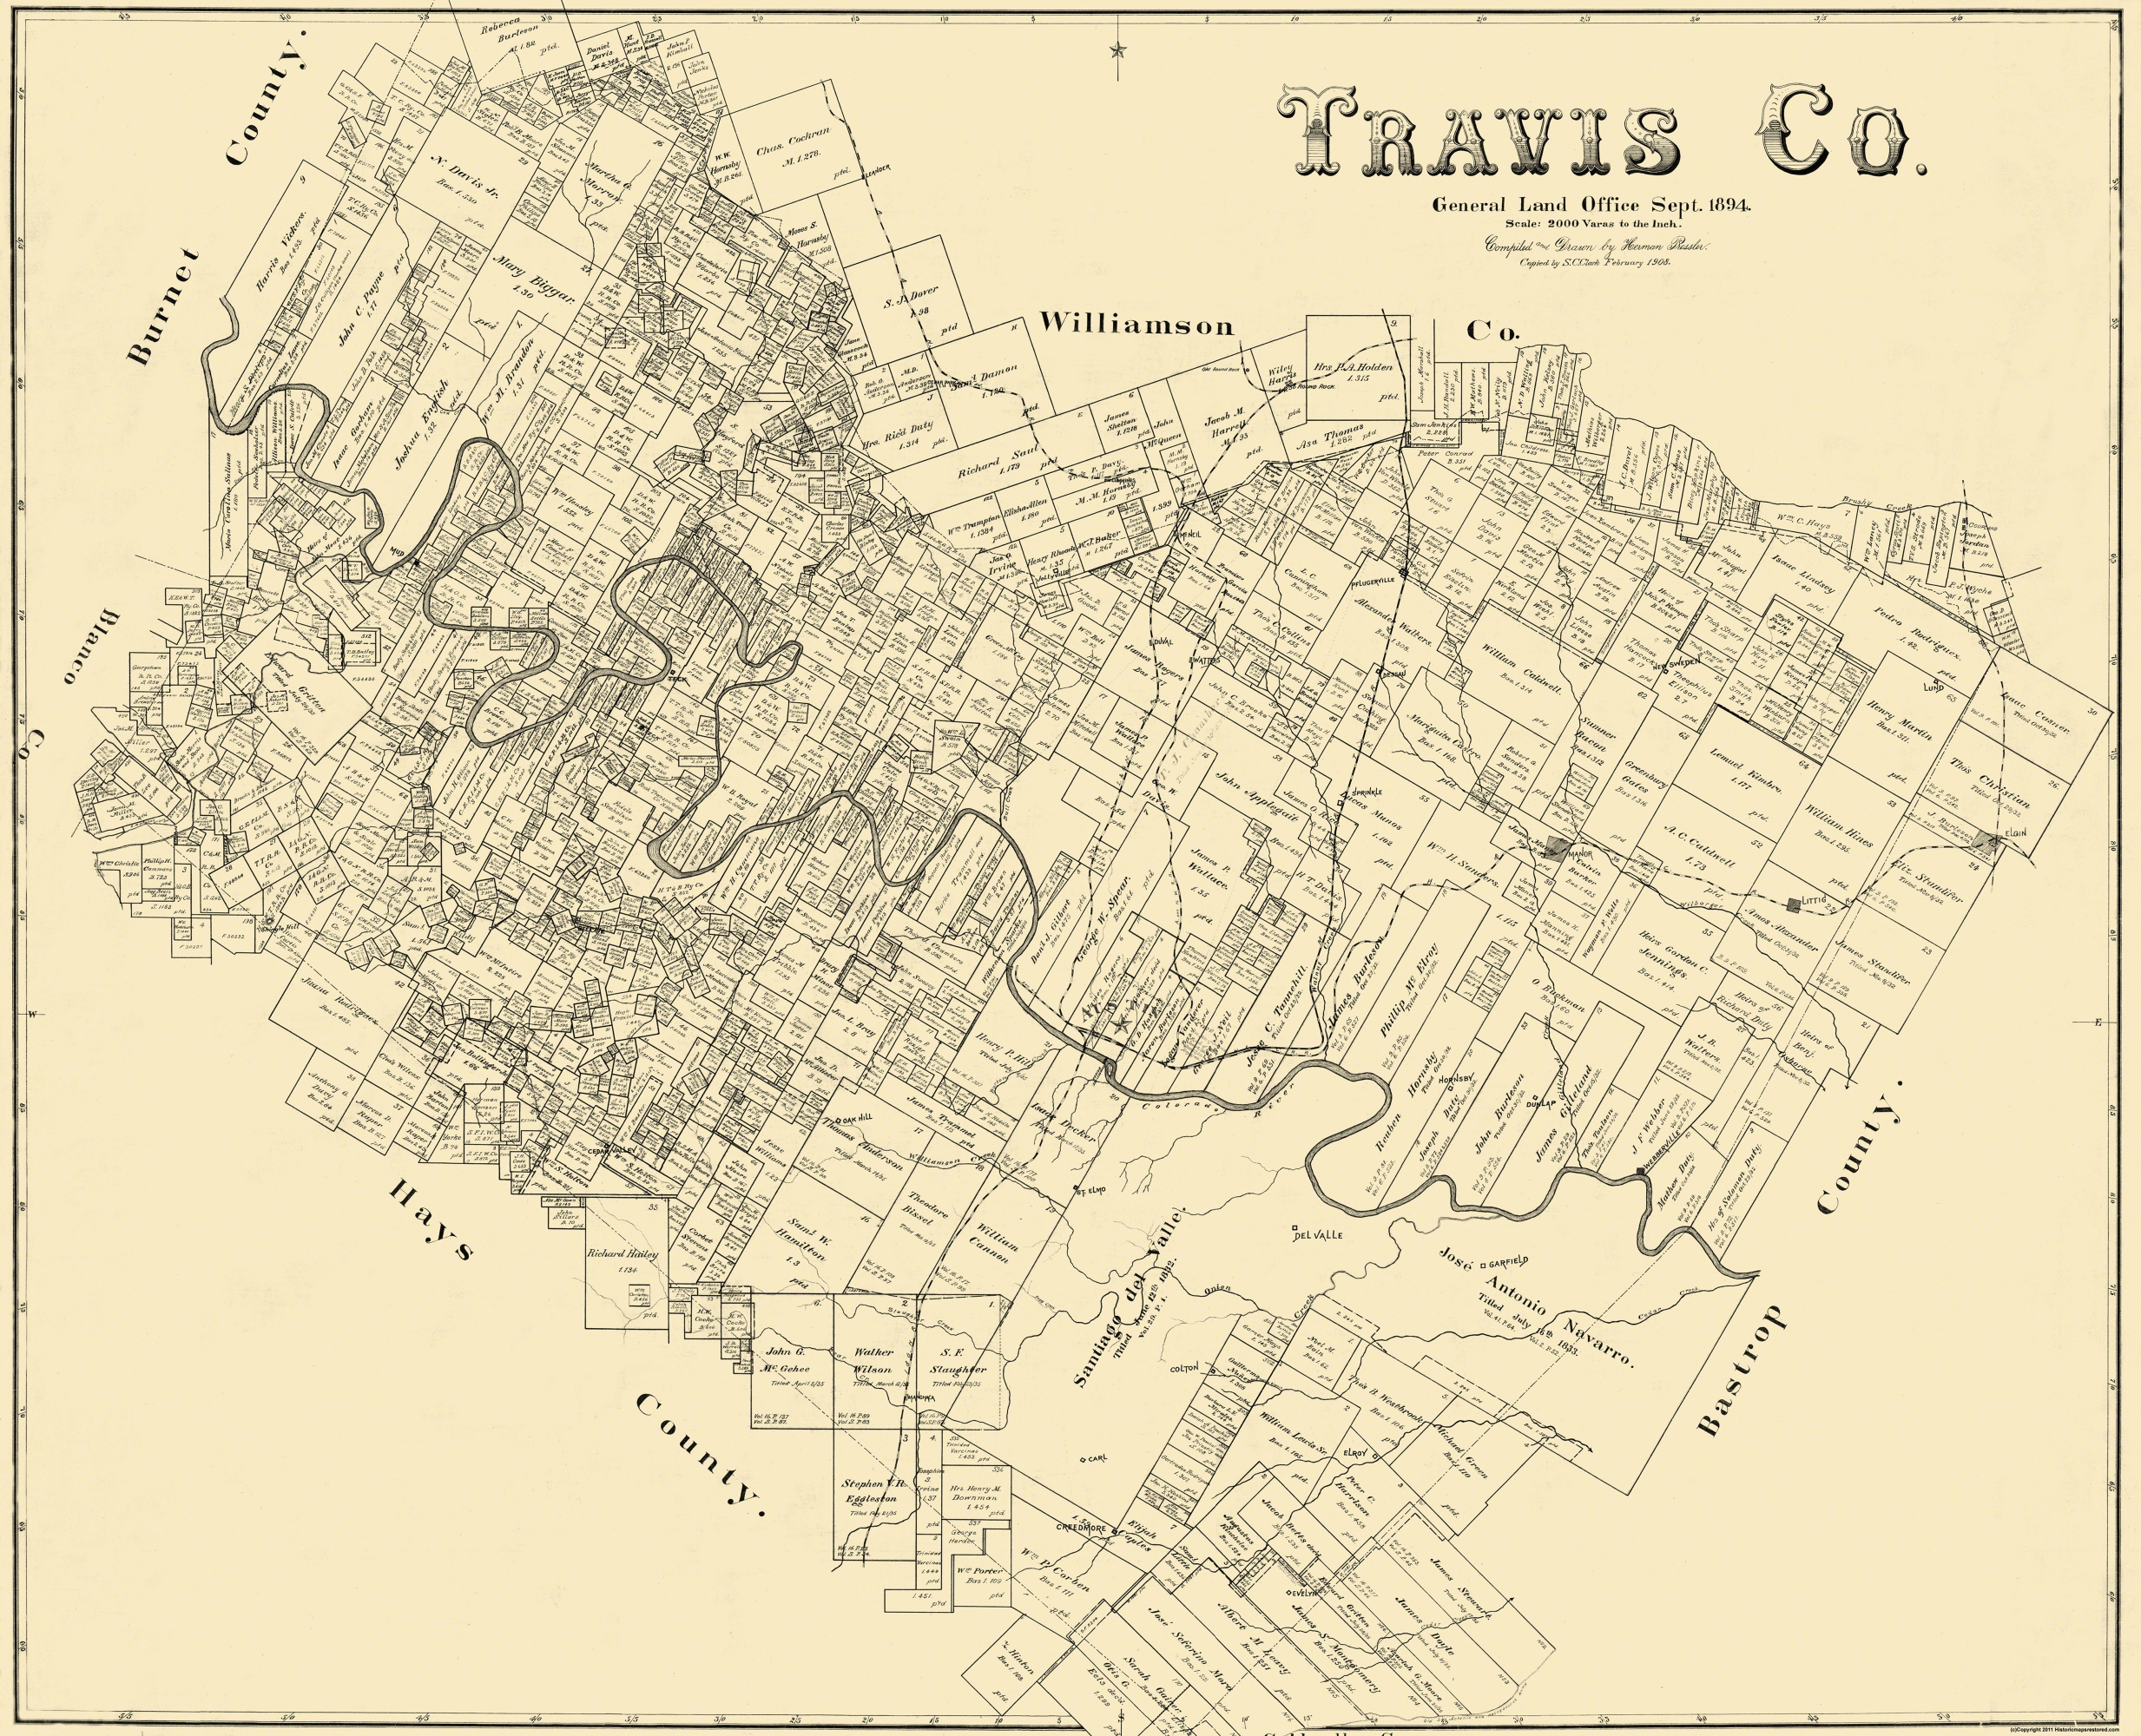 Old County Map - Travis Texas Landowner - 1894 - Antique Texas Map Reproductions